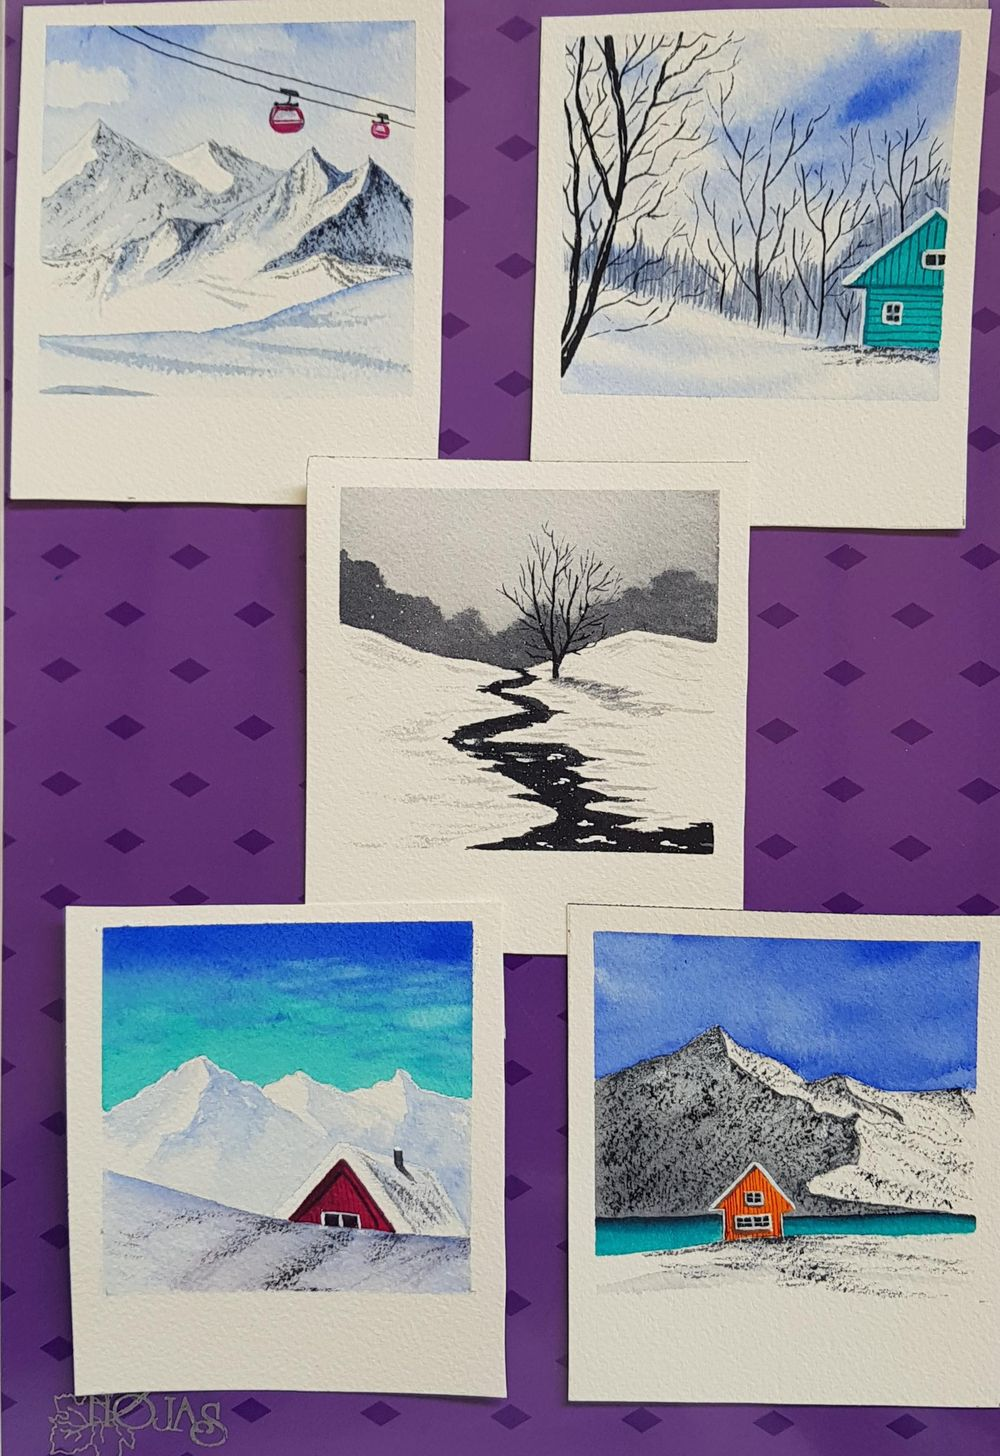 Snow landscapes - image 1 - student project